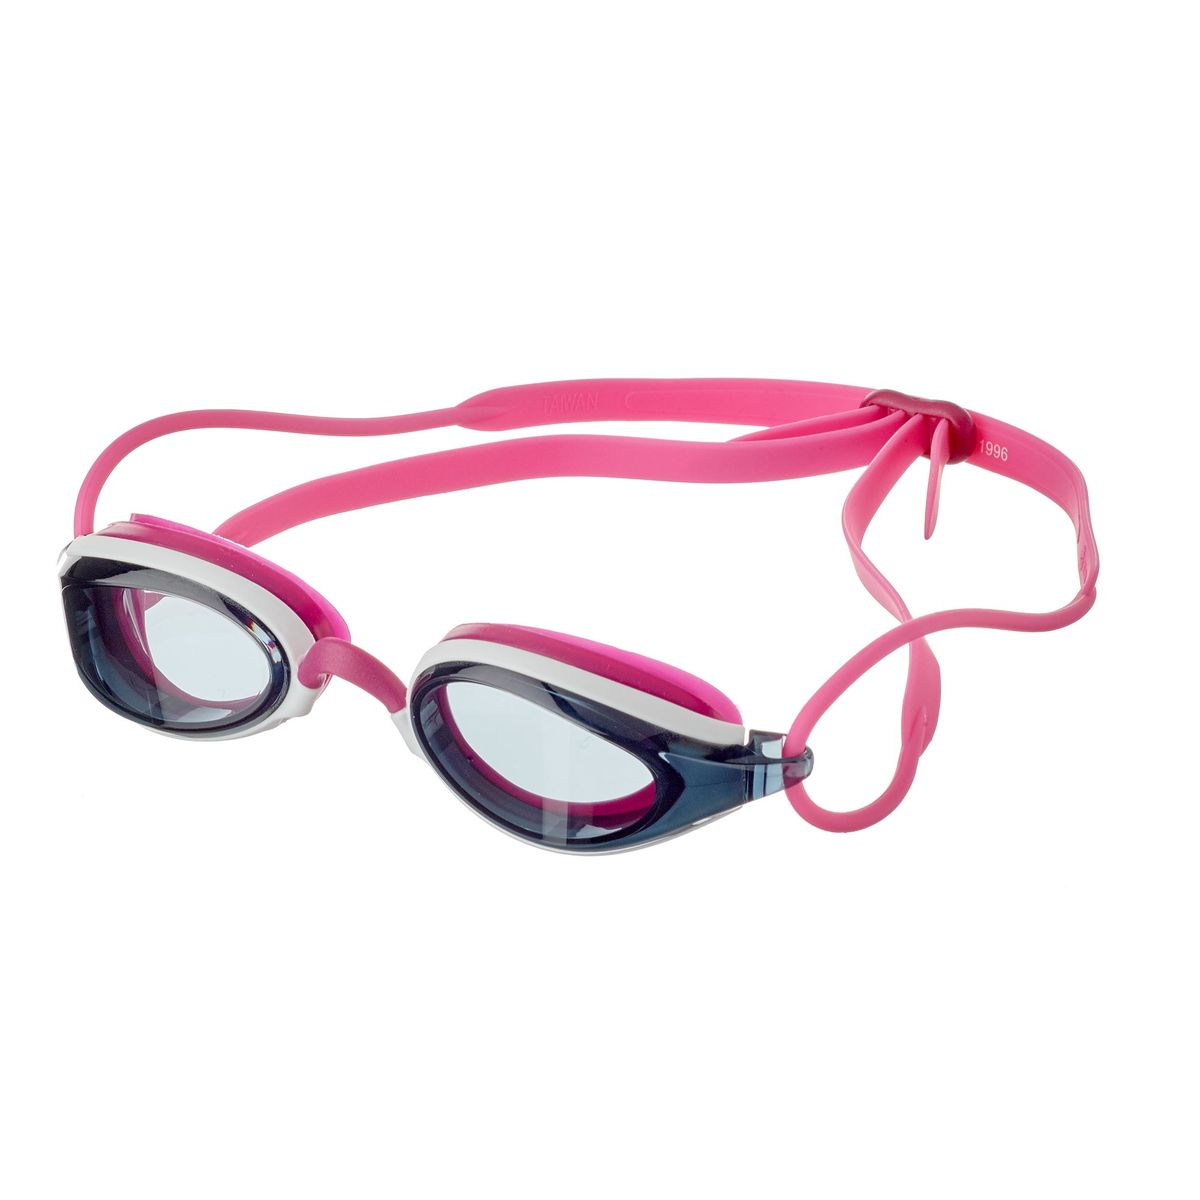 d0e82d14bd4d Buy Zoggs Fusion Air swimming goggles